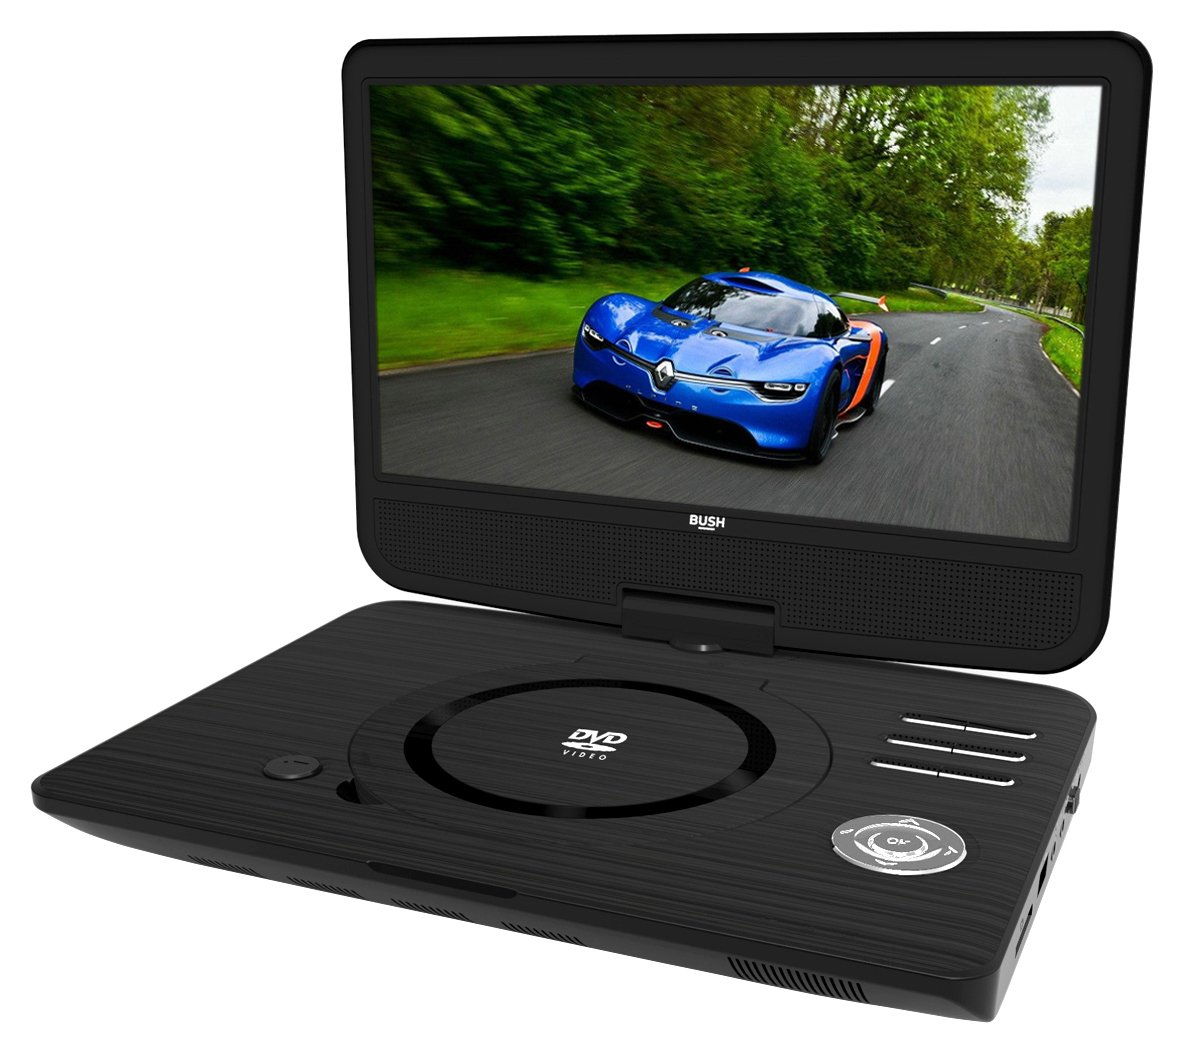 Bush 10 Inch Portable In - Car DVD Player - Black